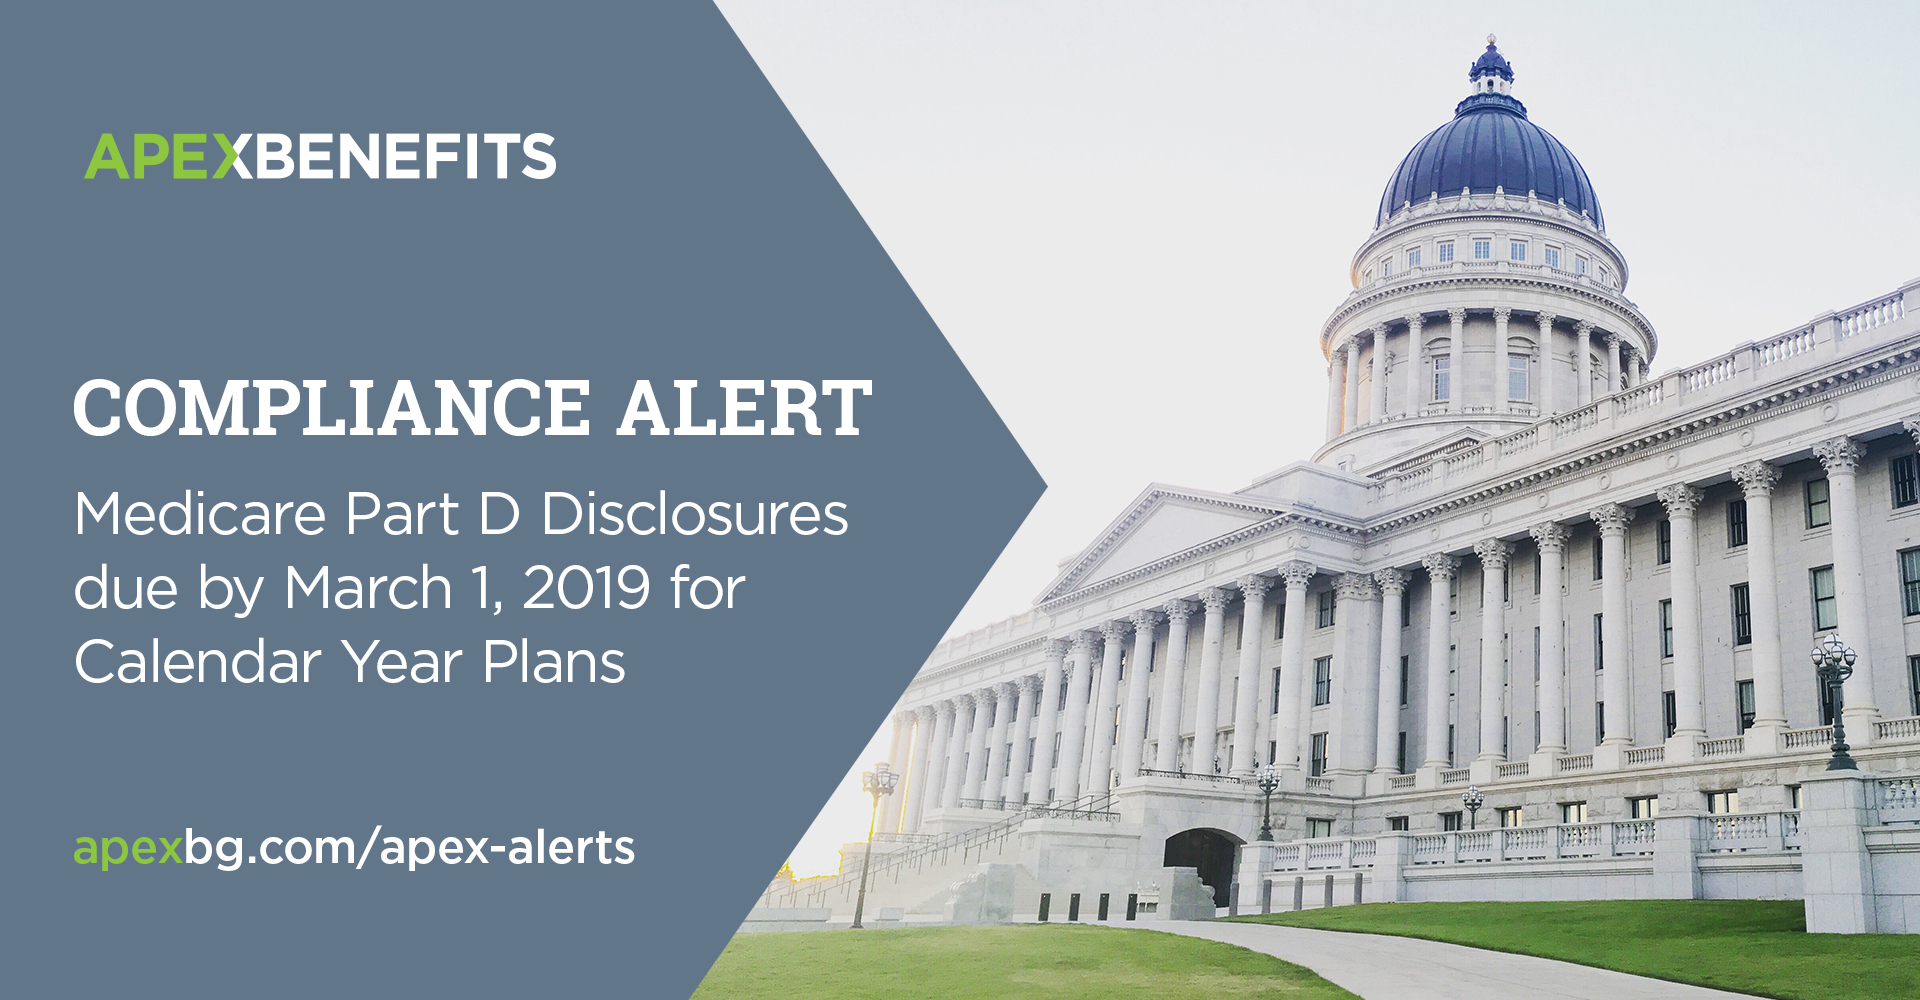 Compliance Alert: Medicare Part D Disclosures Duemarch 1